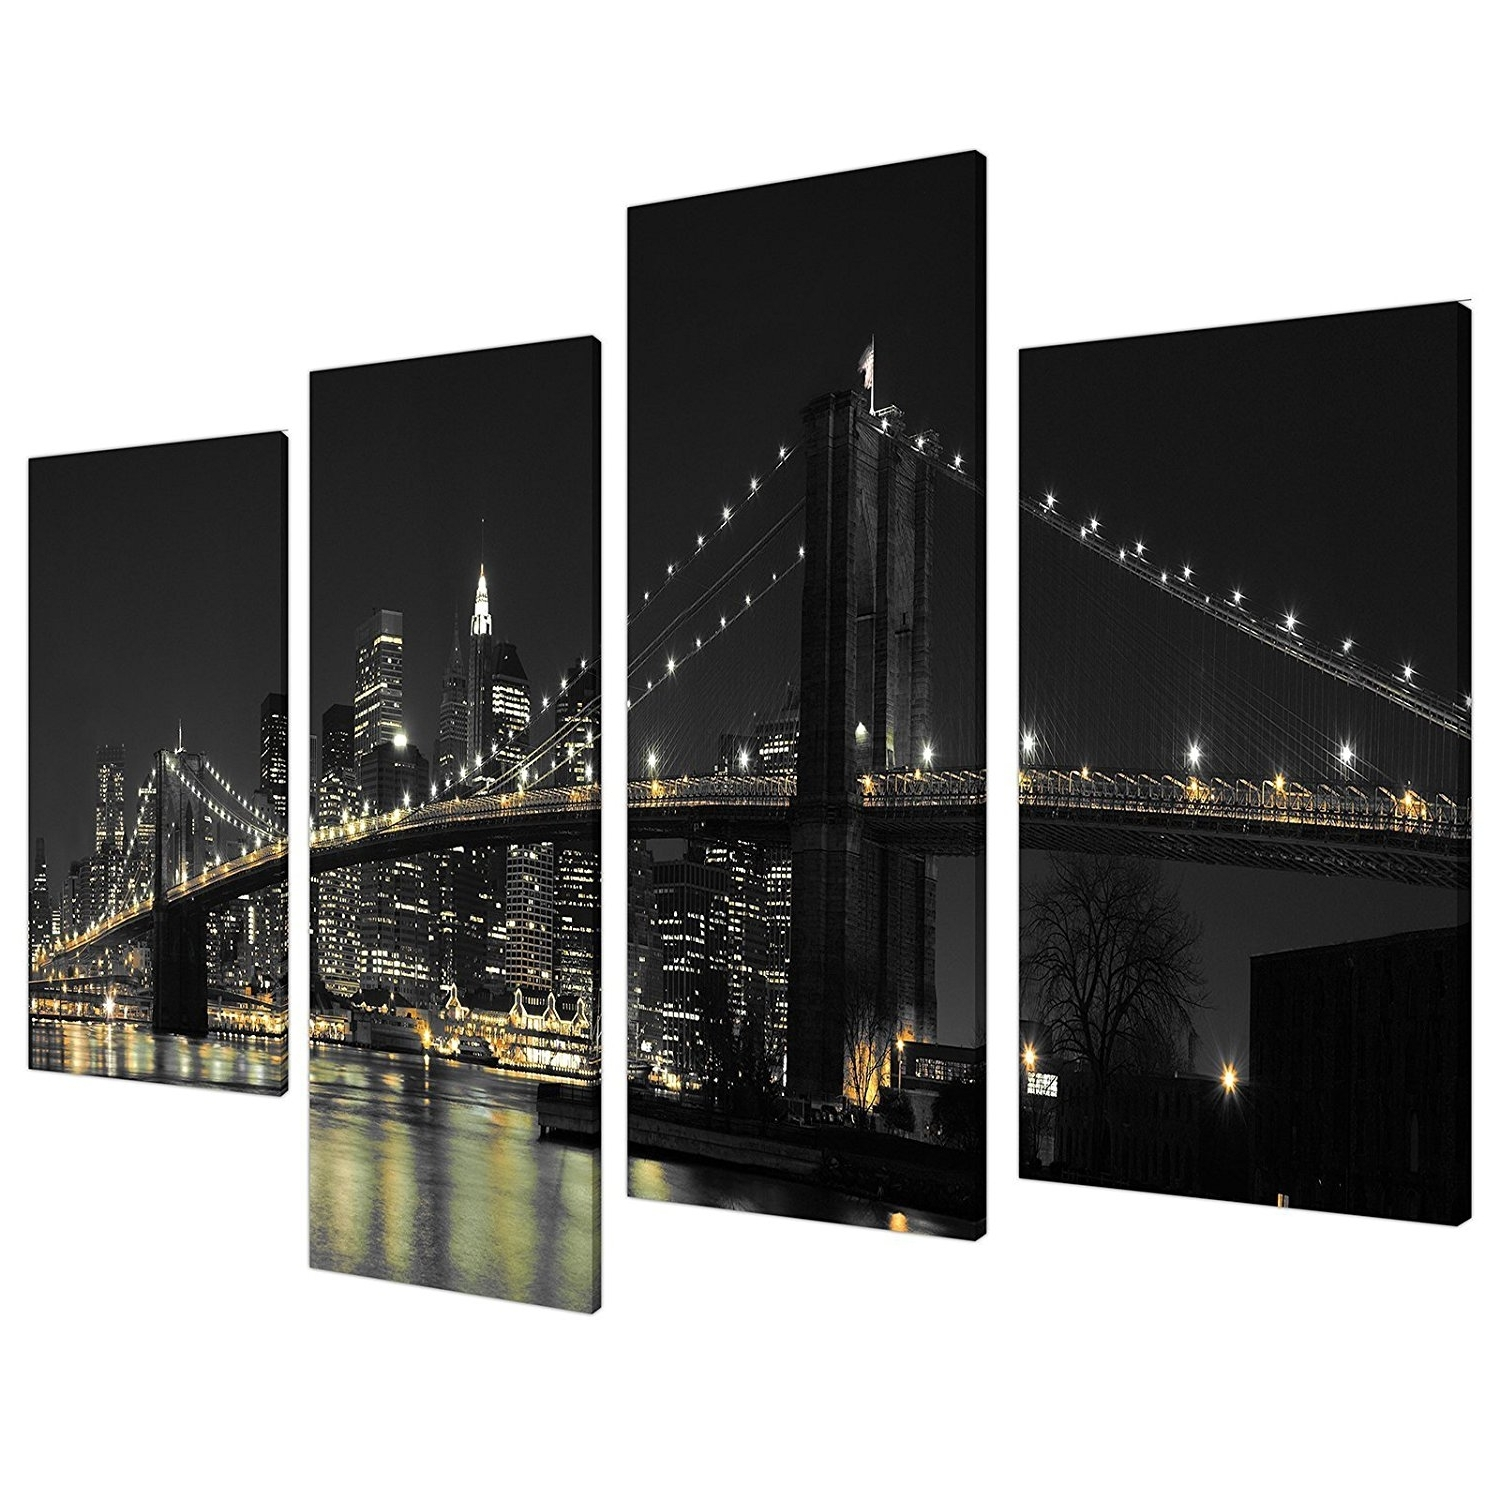 2018 New York Skyline Canvas Black And White Wall Art With Amazon: Large New York City Canvas Wall Art Pictures Of Nyc (View 3 of 15)